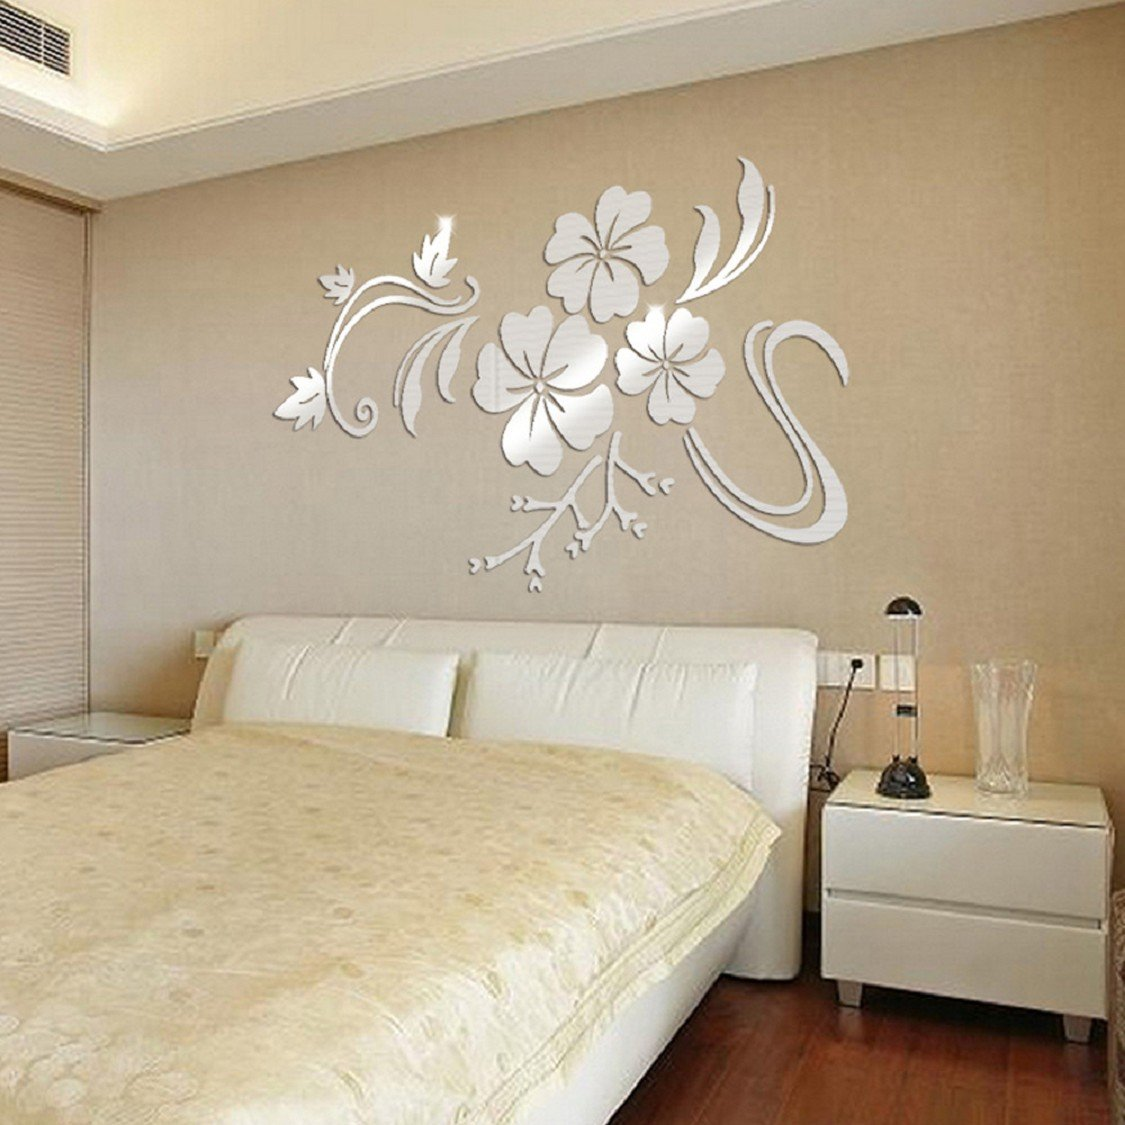 Ikevan 1set acrylic art 3d mirror flower wall stickers diy home ikevan 1set acrylic art 3d mirror flower wall stickers diy home wall room decals decor sofa tv setting wall removable wall stickers 78x60cm sliver amipublicfo Image collections